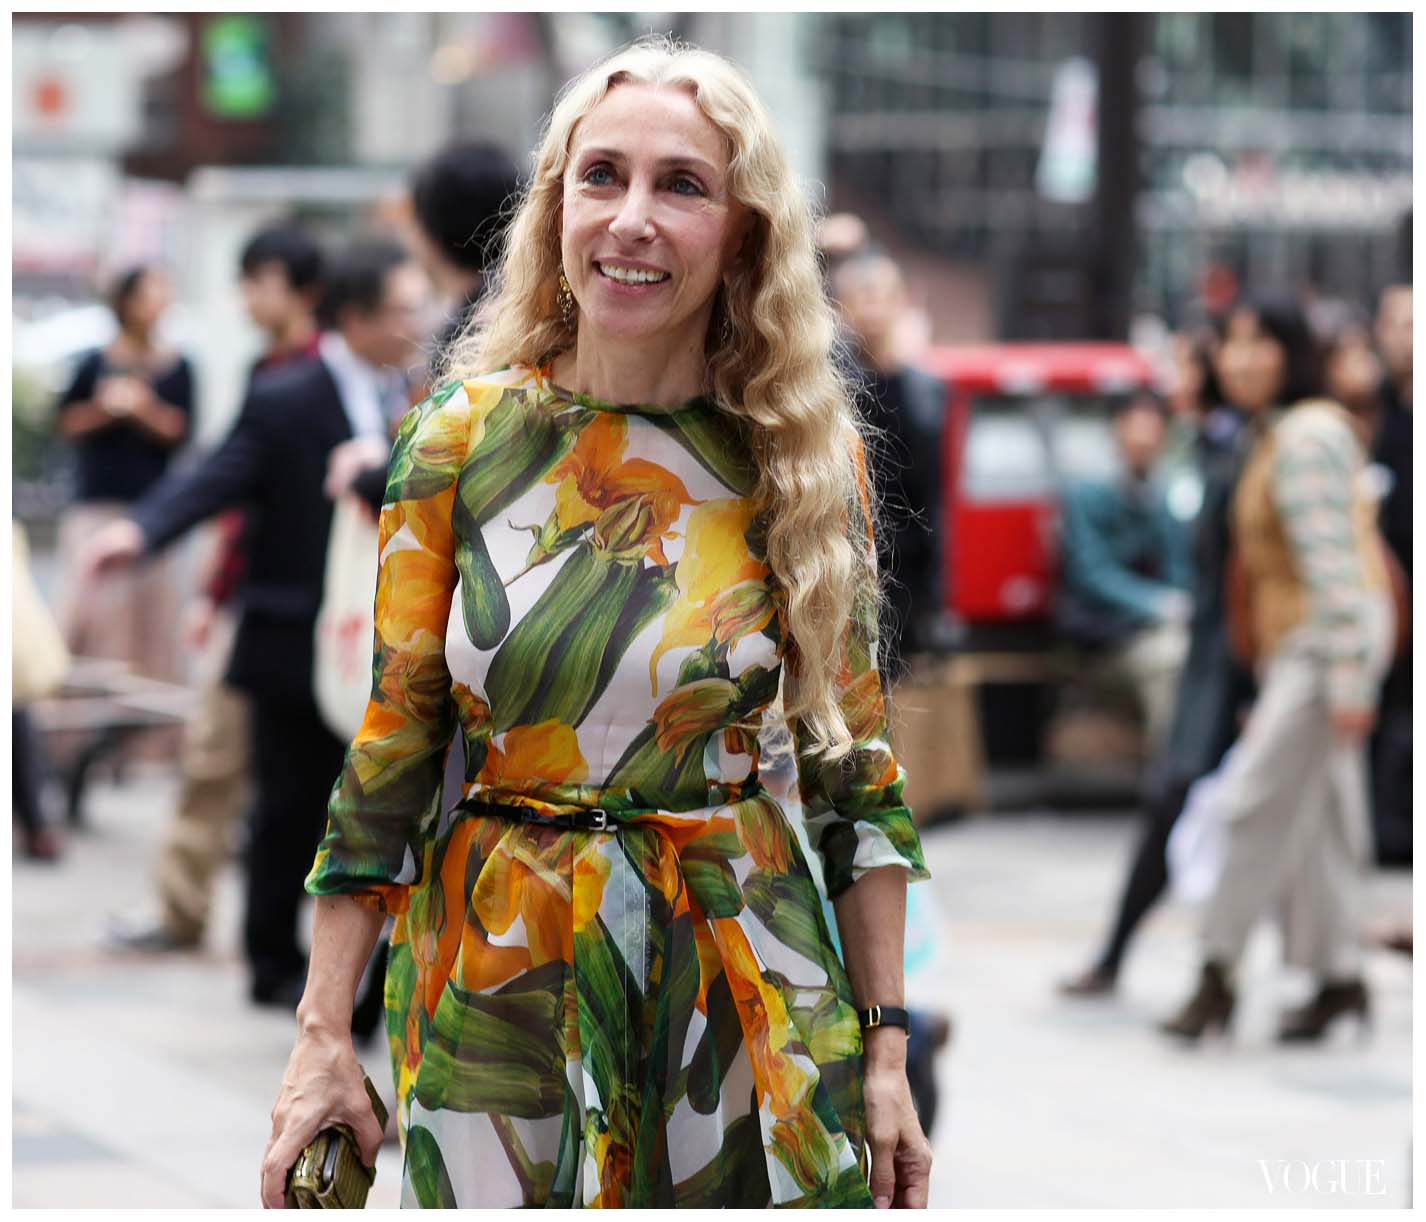 franca sozzani tokyo vogue italia photographed by phil oh